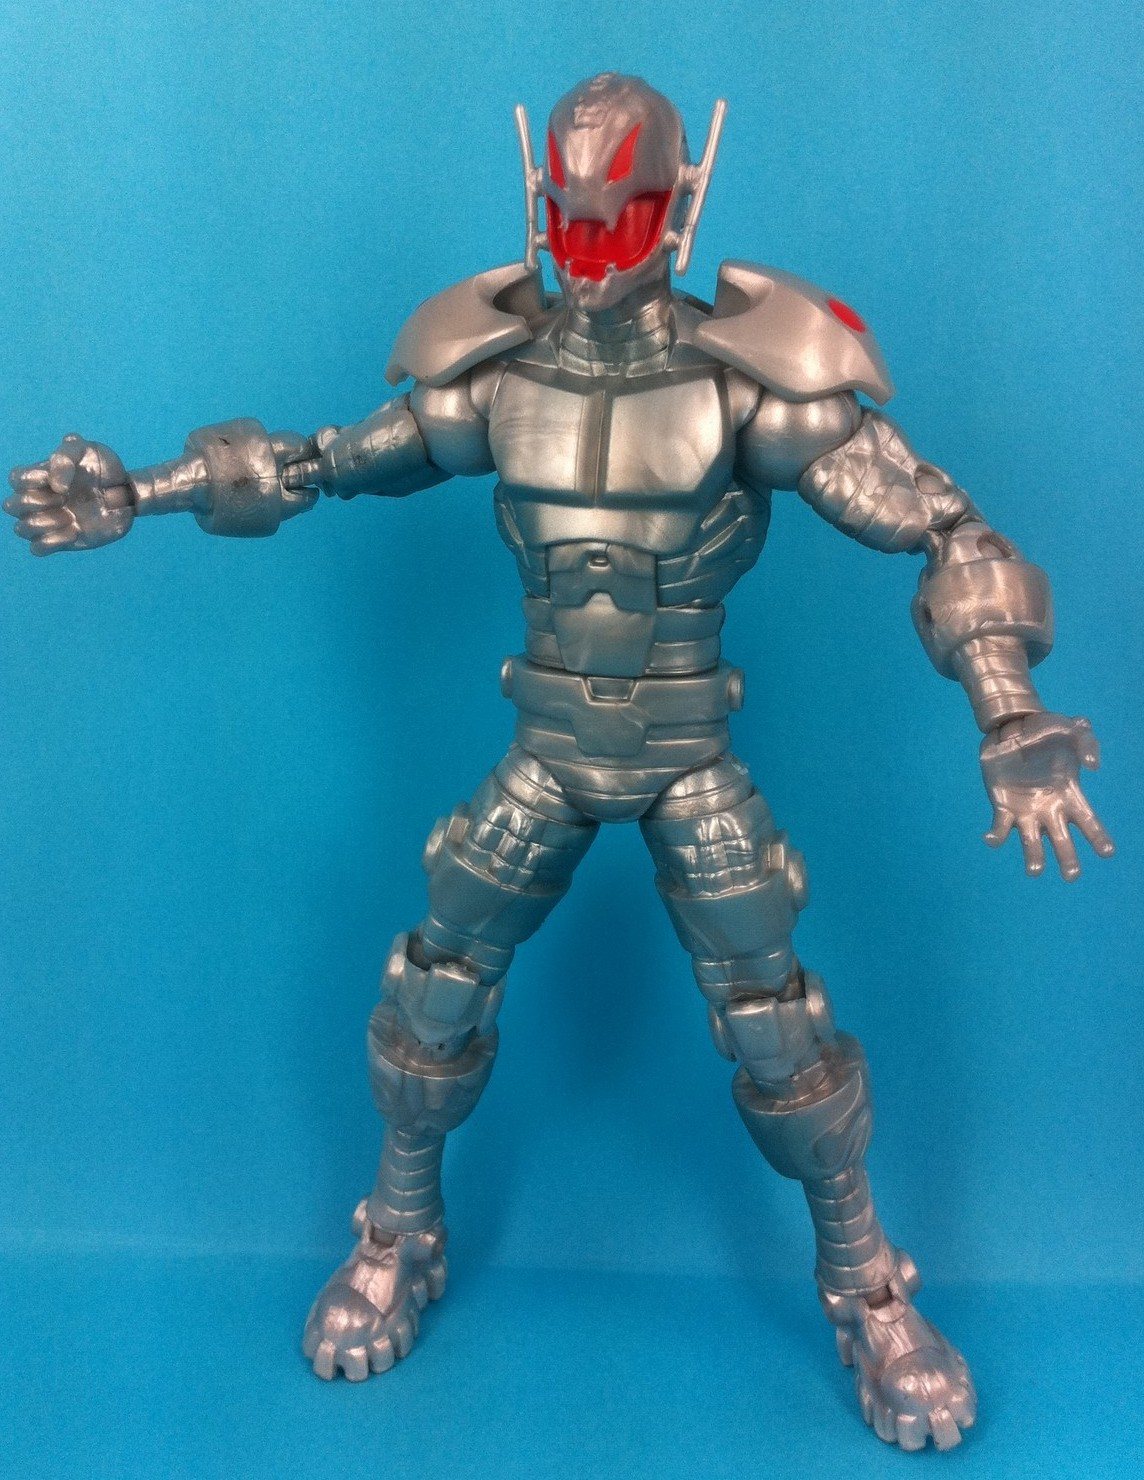 Marvel Legends Iron Man 3 Ultron Figure In-Hand Pics